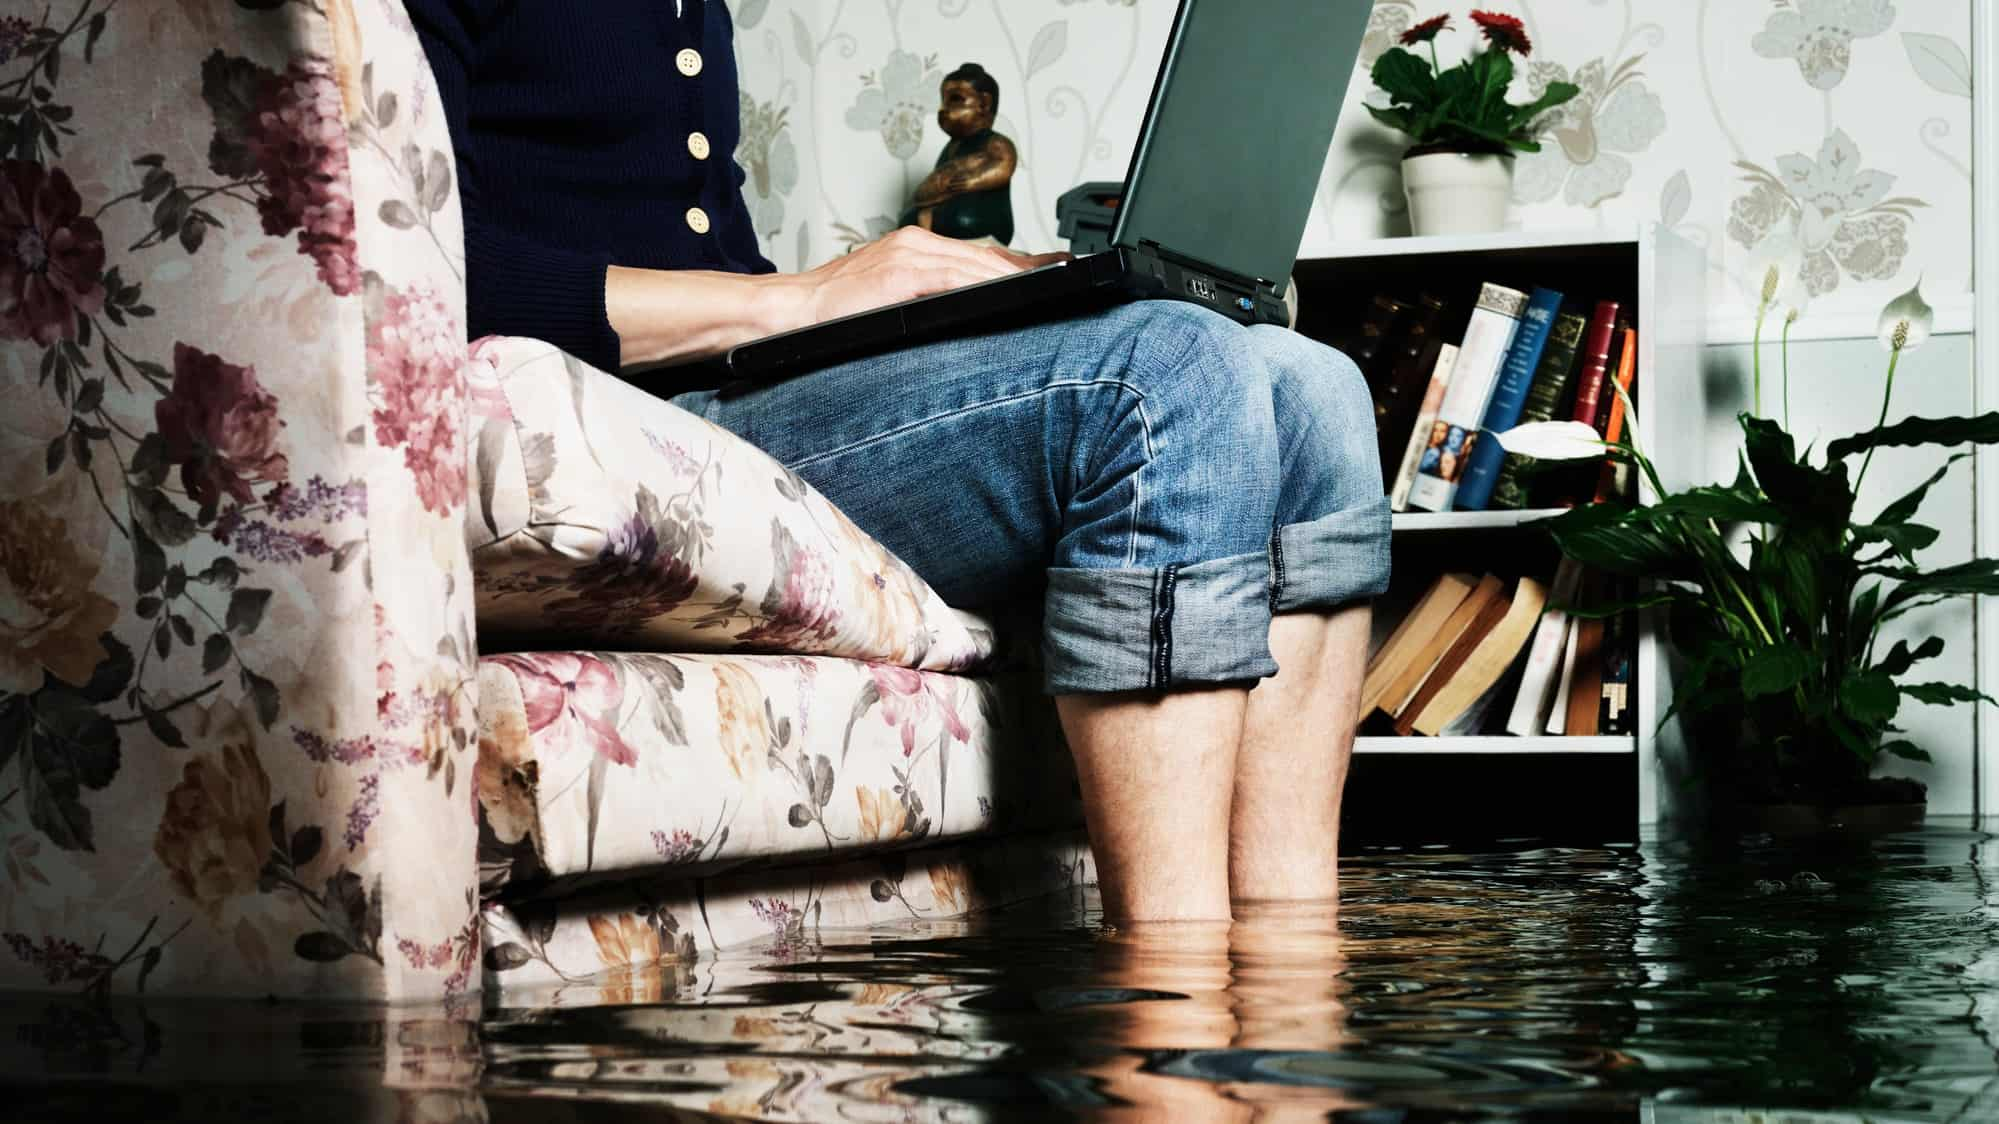 A person sits on a couch with a laptop while flood waters lapping around his legs, indicating a push on insurance companies